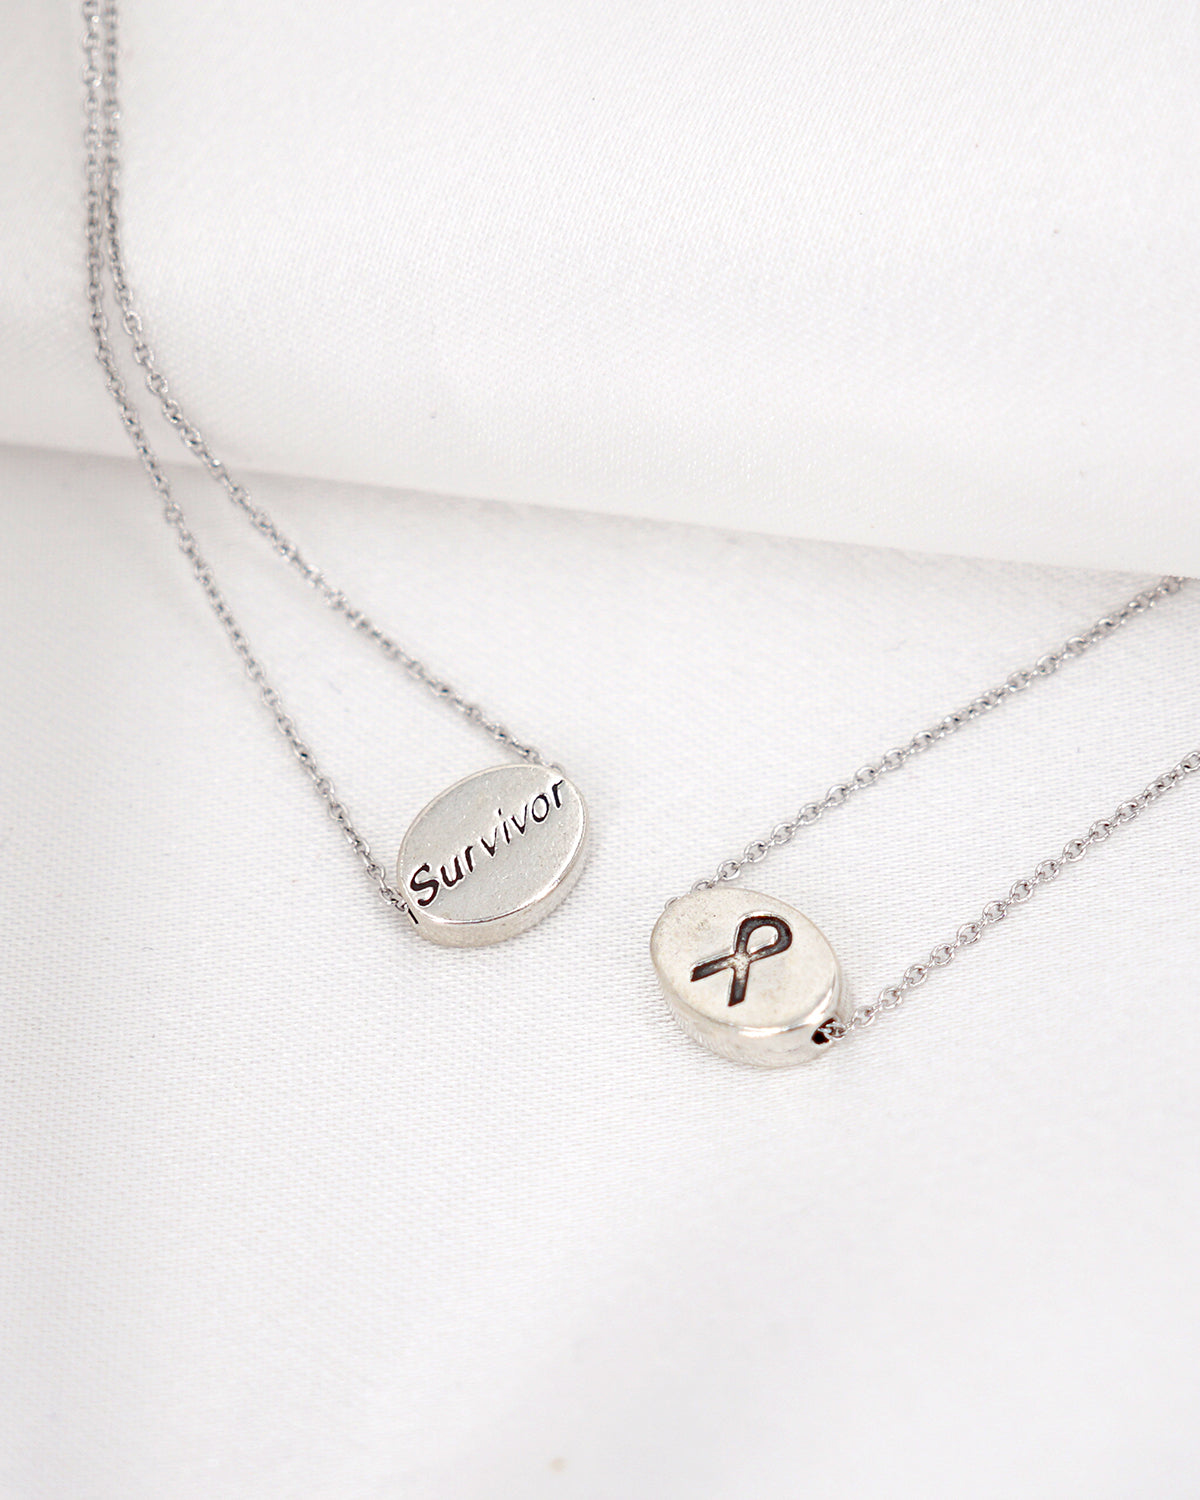 Cancer Survivor Necklace | Jewelry for a Cause | Proceeds to Charity